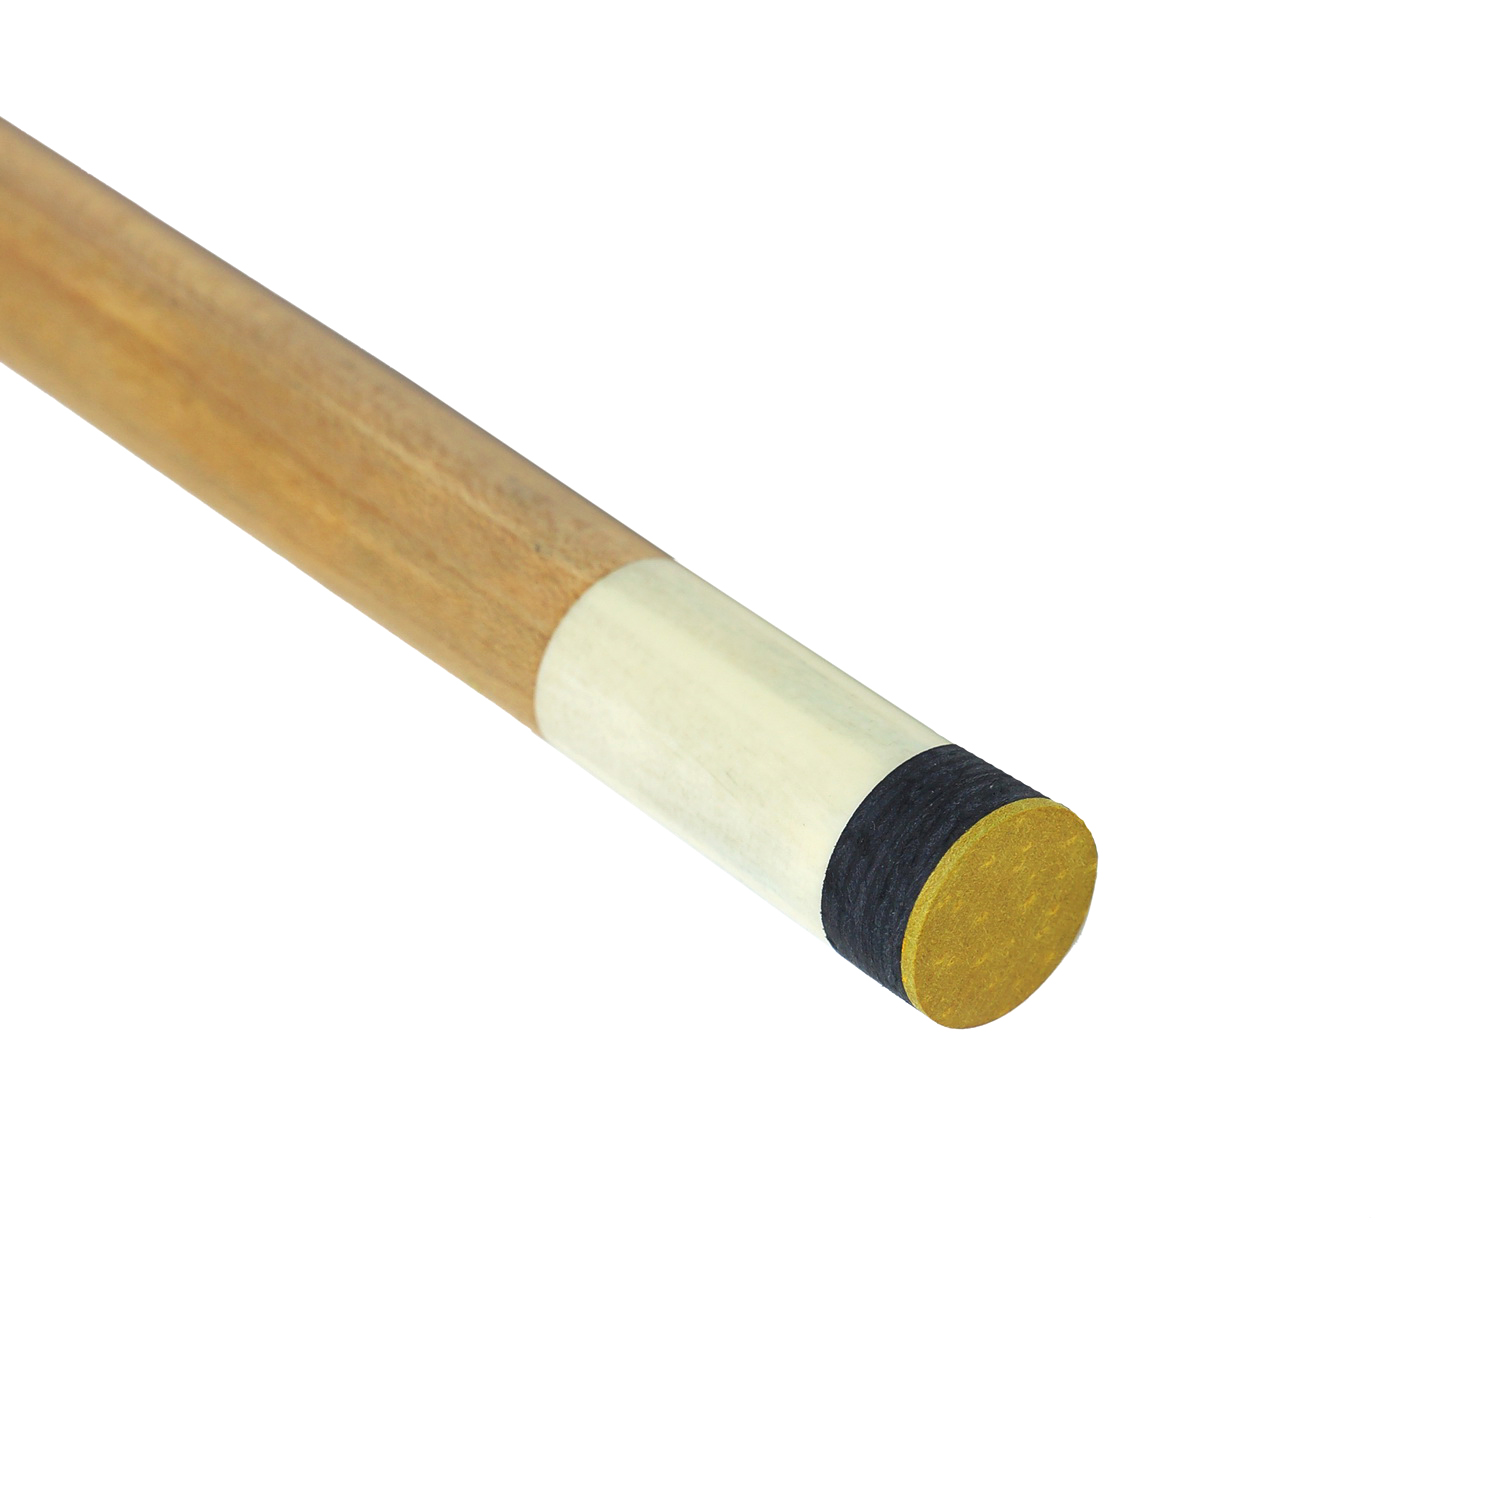 Billiard tip chalk cue accessory